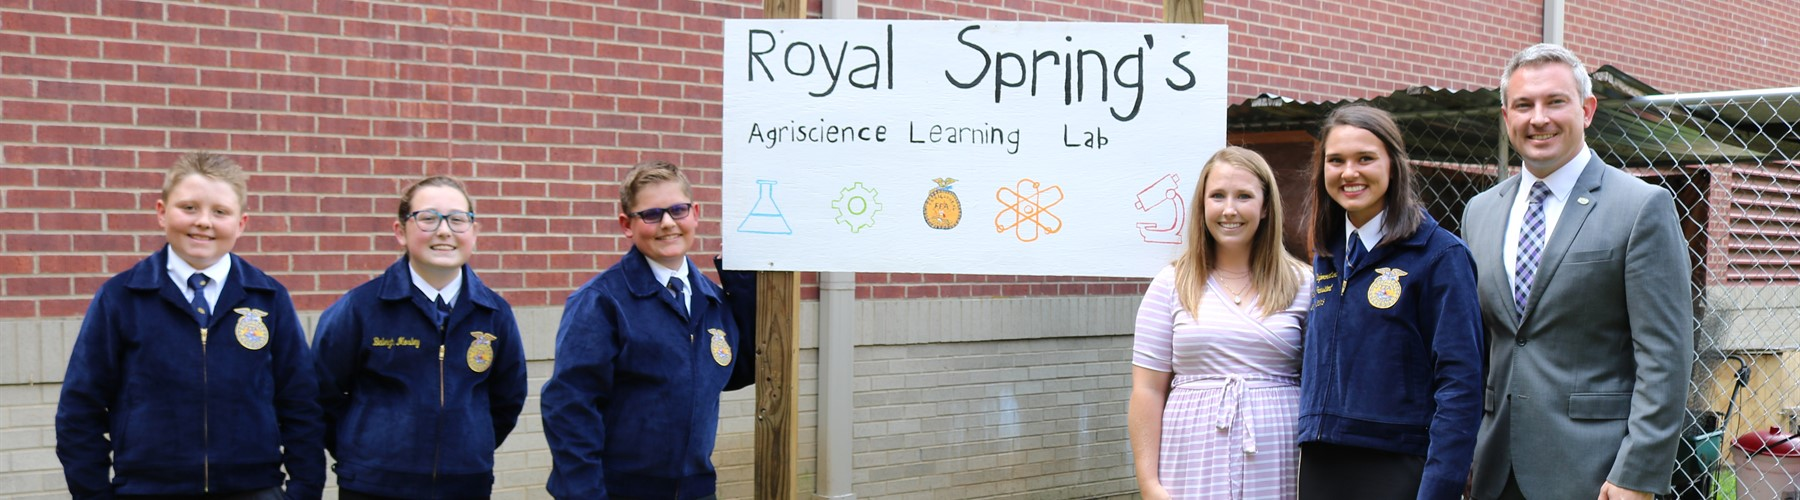 RSMS Agriscience Learning Lab